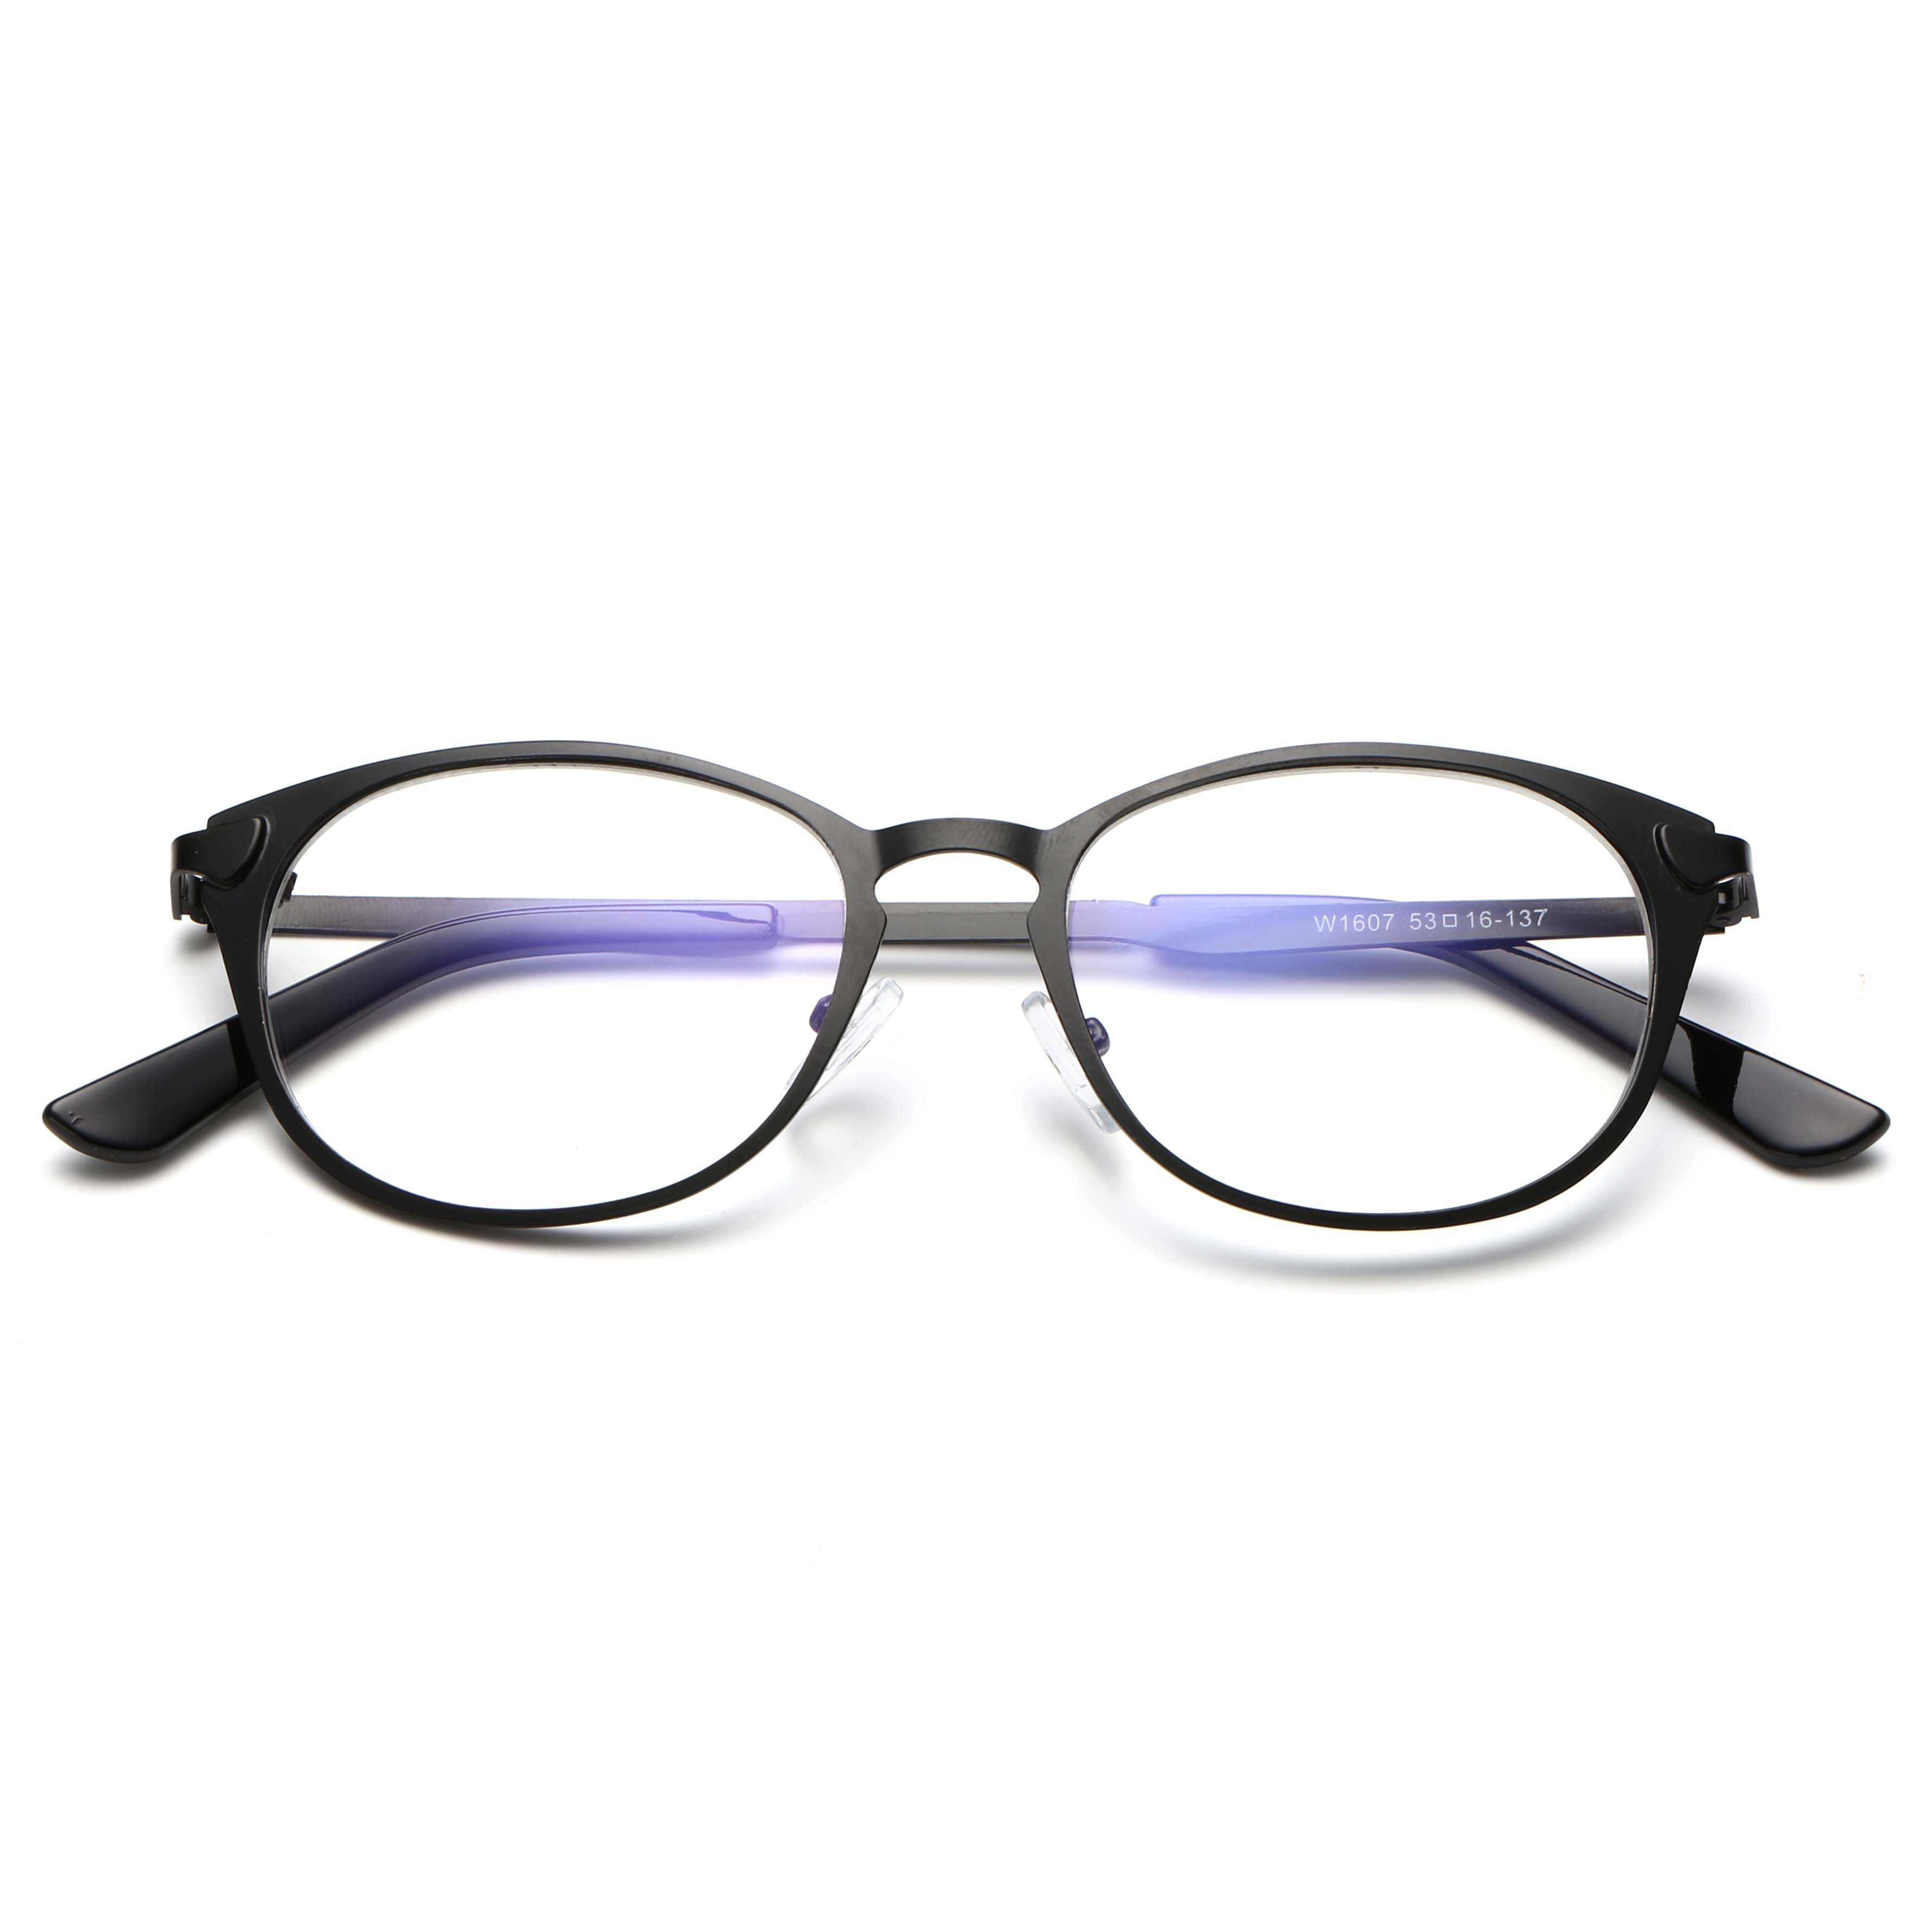 blue black blocking matt products glasses aviator tazzo light fullsizerender